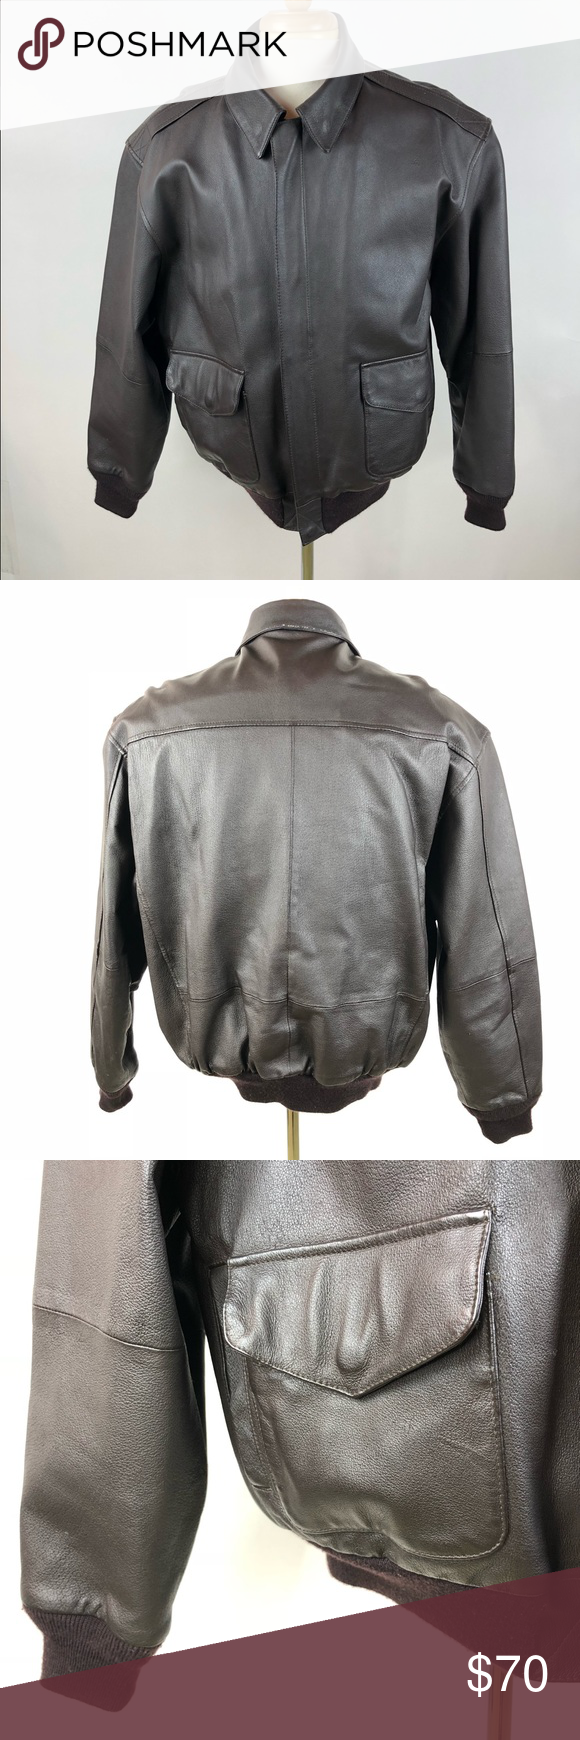 Air Force Airborne Full Zip Brown Leather Jacket Brown Leather Jacket Jackets Leather Jacket [ 1740 x 580 Pixel ]